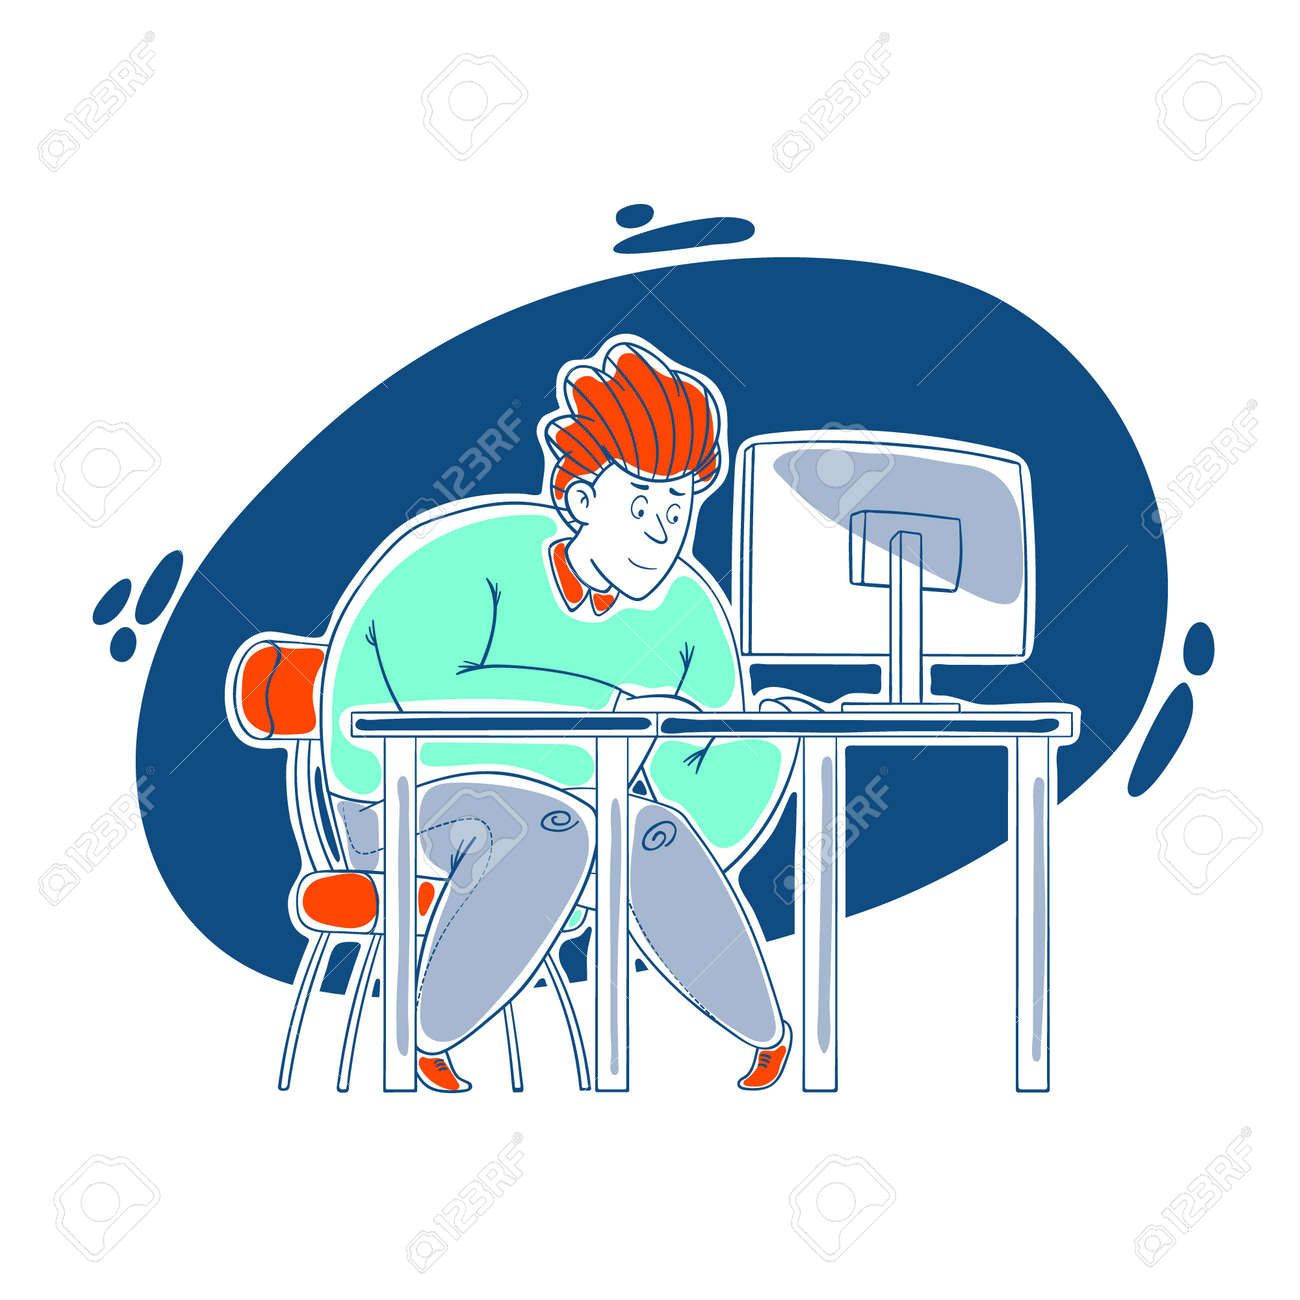 A kind, sweet, cheerful guy works hard at the computer in the office. Work in the office, deadline. Cartoon style, contour drawing in a vector. - 159580666